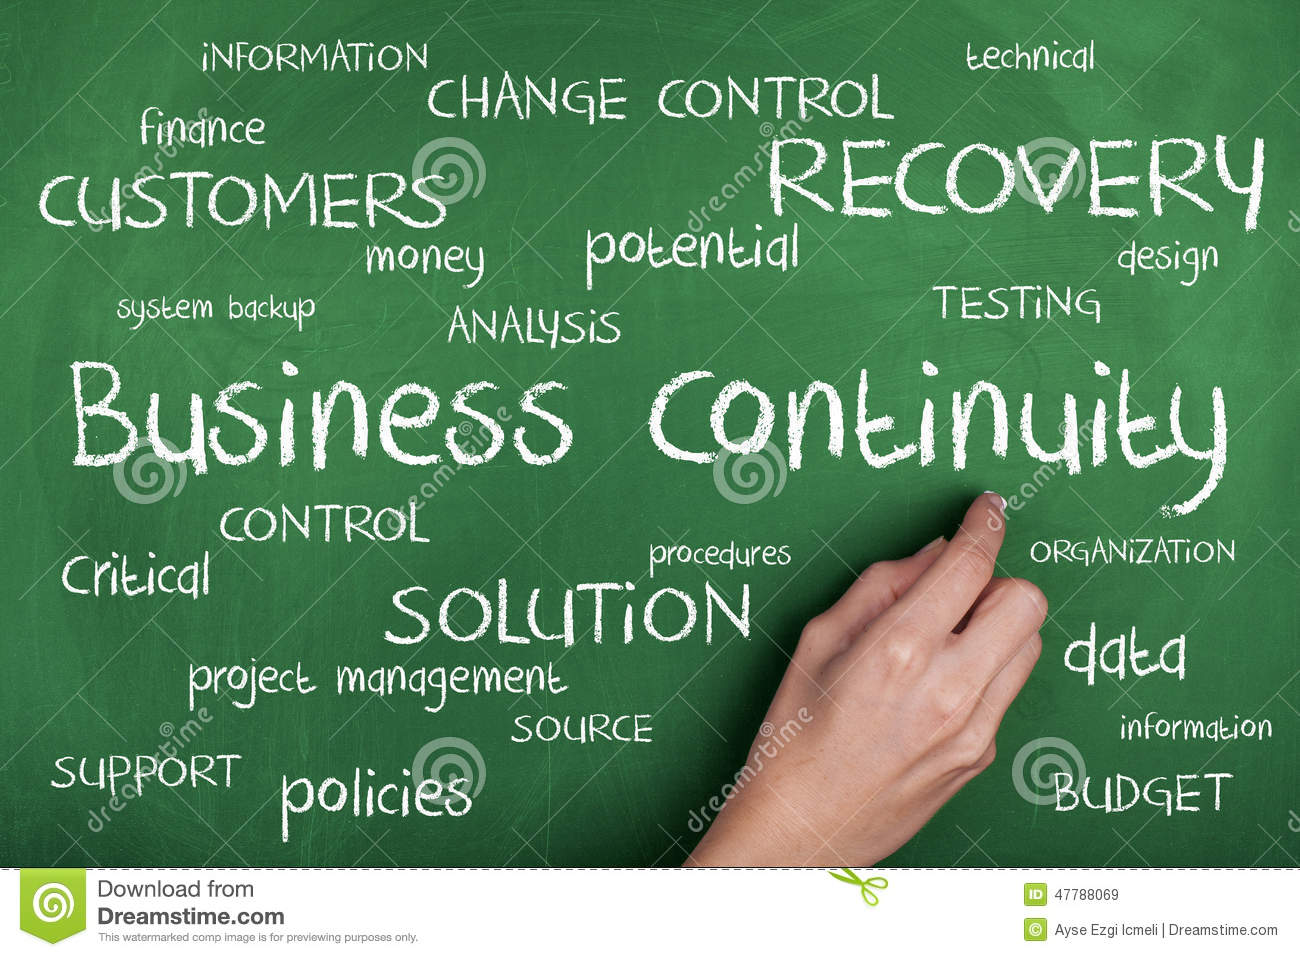 quality concept a business issue Quality management (tqm), which moved the focus from problem solving towards problem  critical to addressing major business issues an achieveglobal survey of 373 business leaders  research  1 2 harvard business review, creating a problem-solving culture.